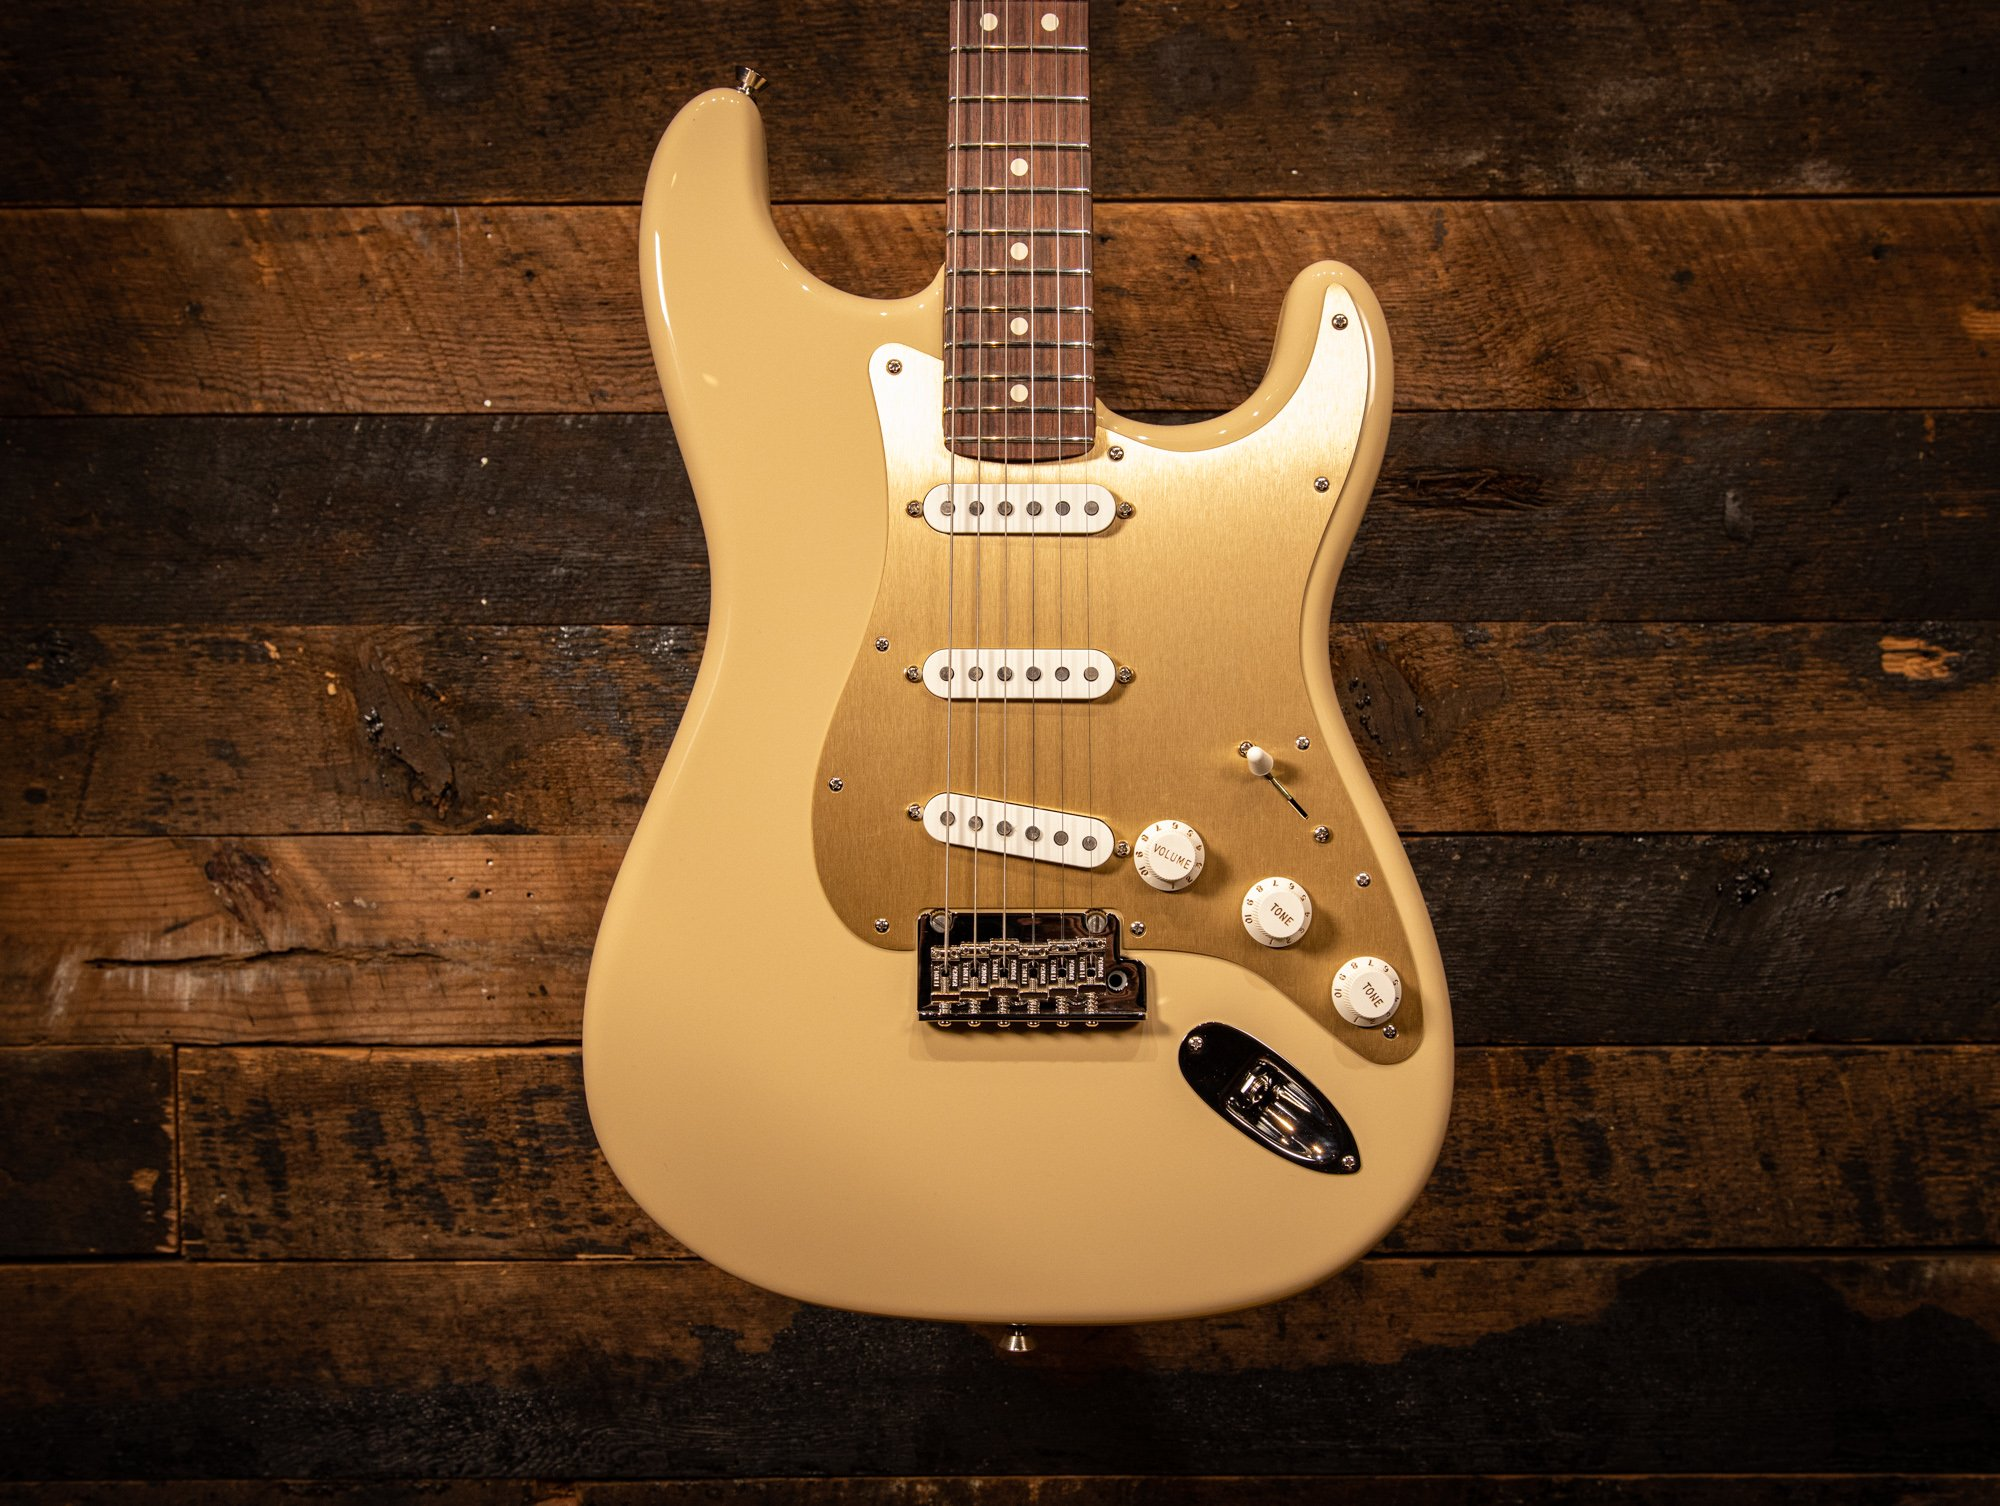 Fender 2019 Limited Edition American Professional Stratocaster Guitar, Solid Rosewood Neck, Desert Sand